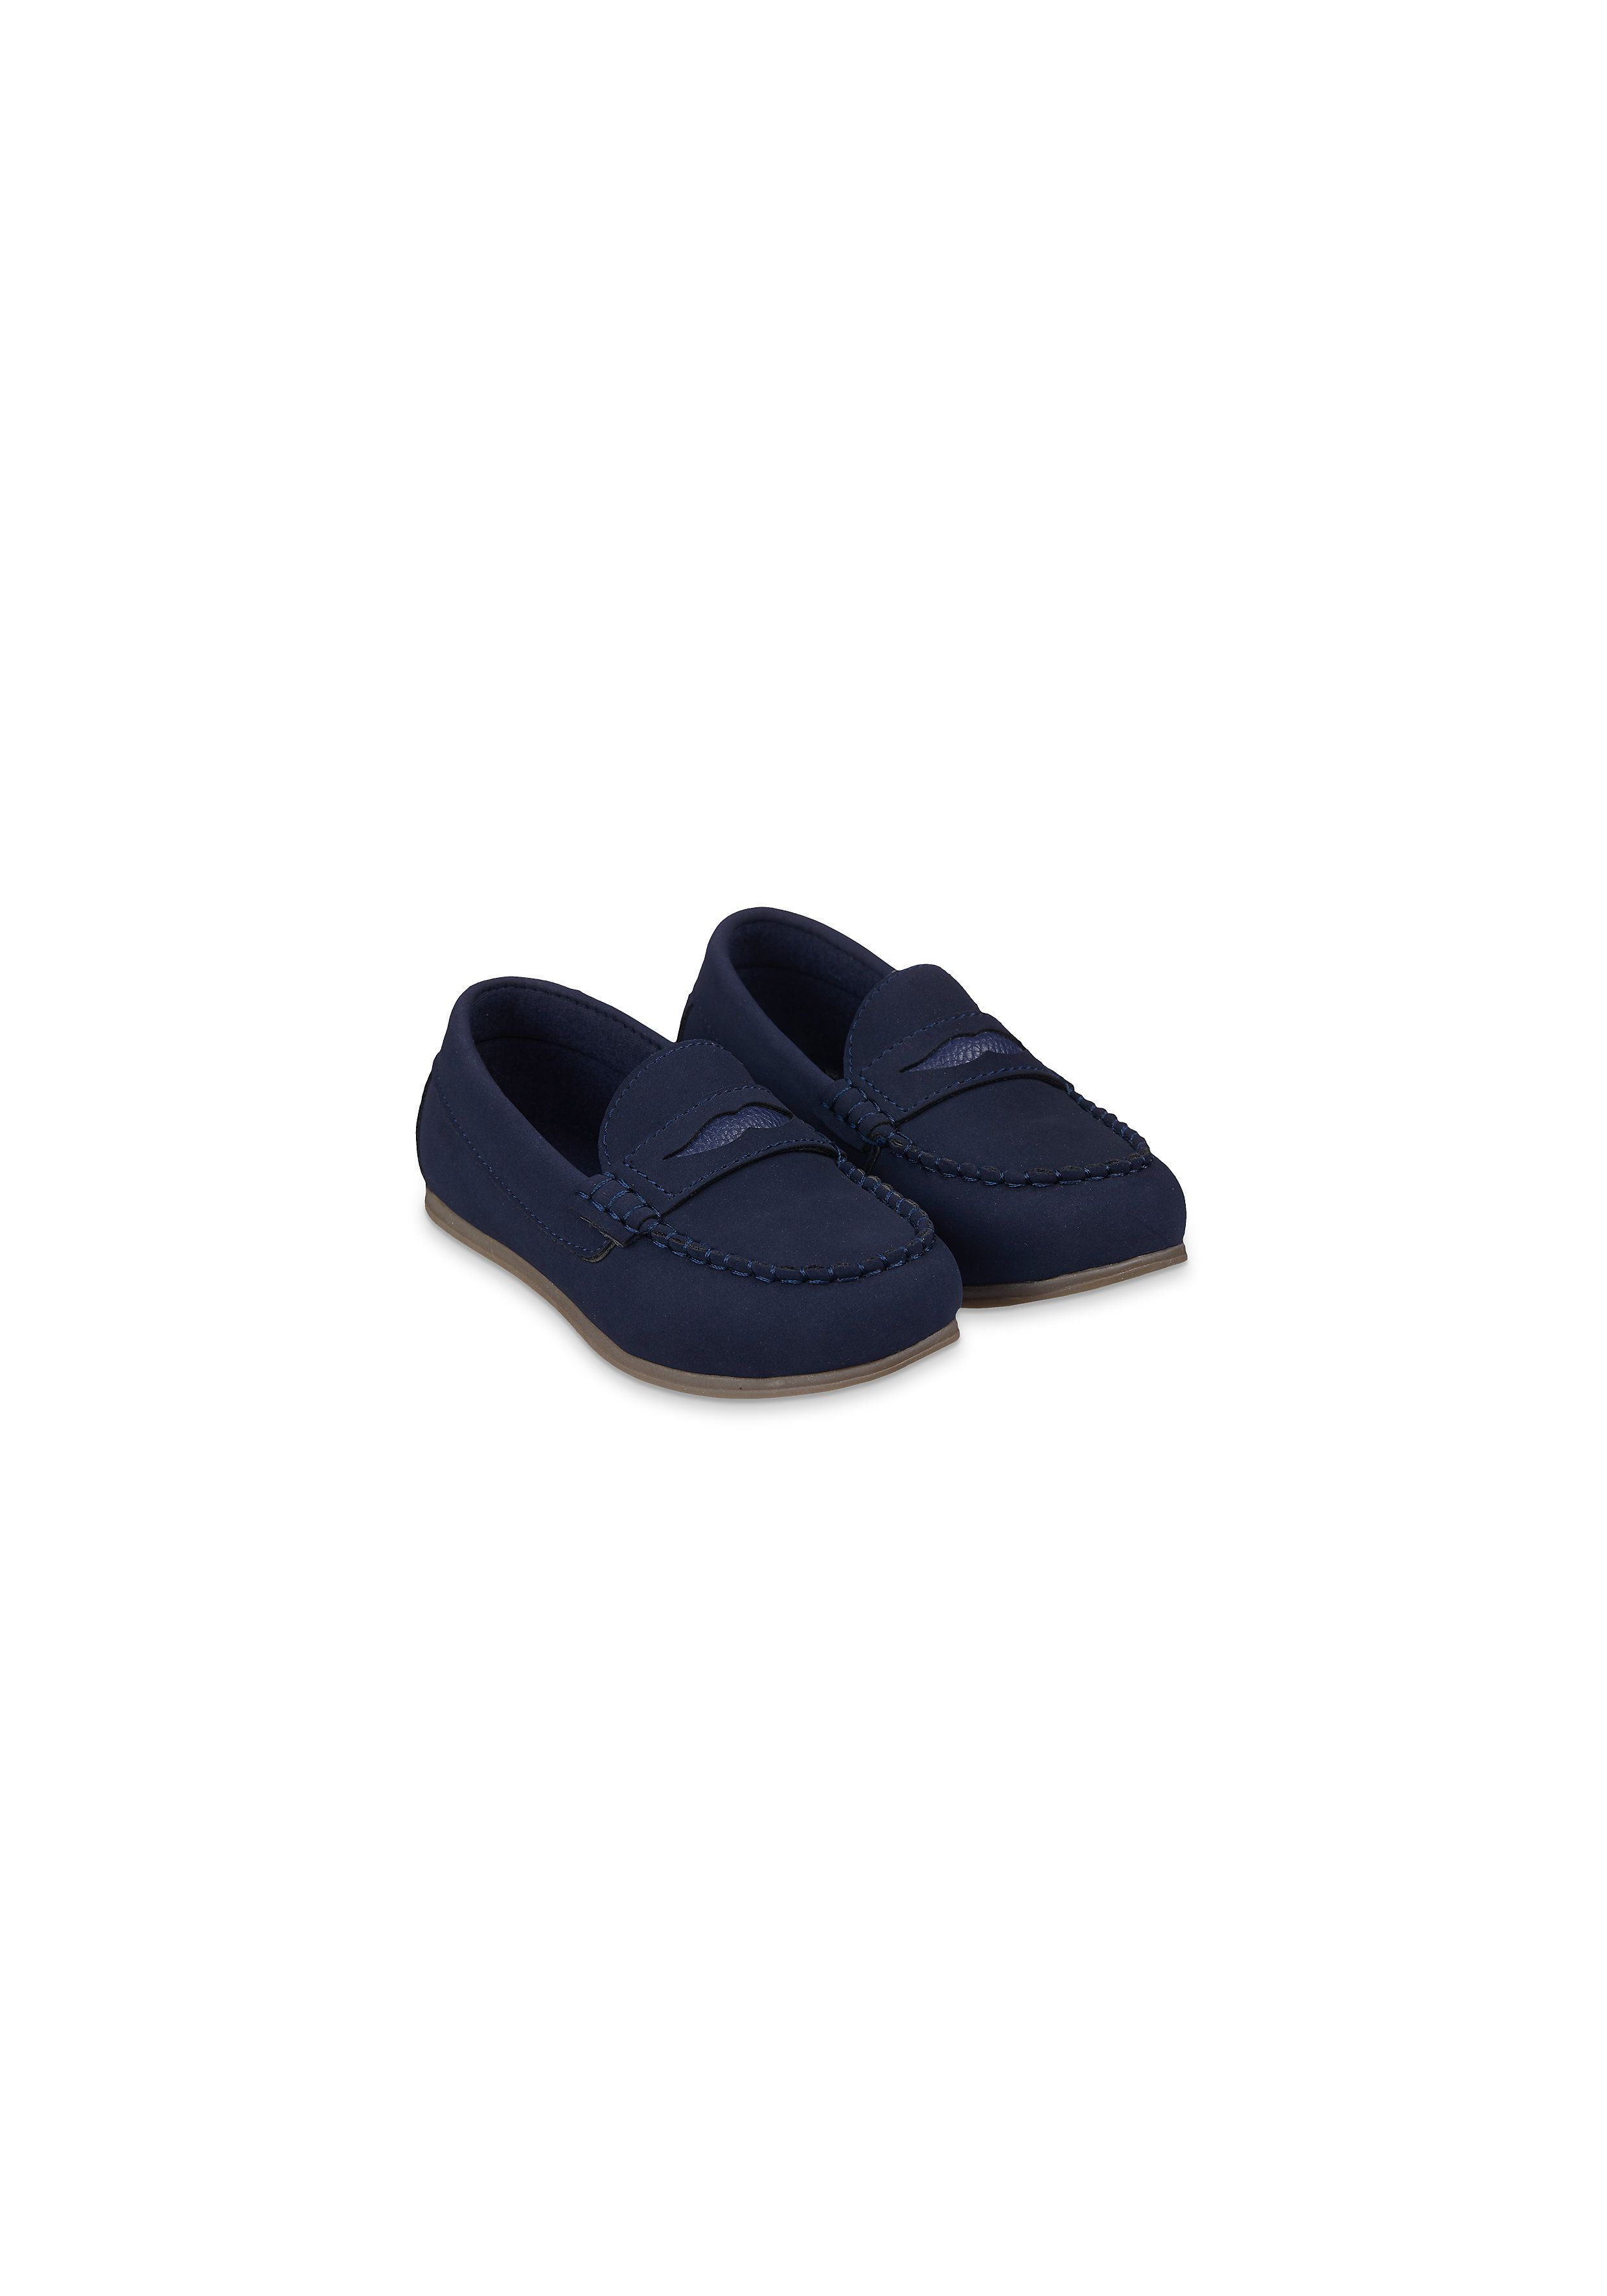 Mothercare   Boys Navy Loafer Shoes - Navy